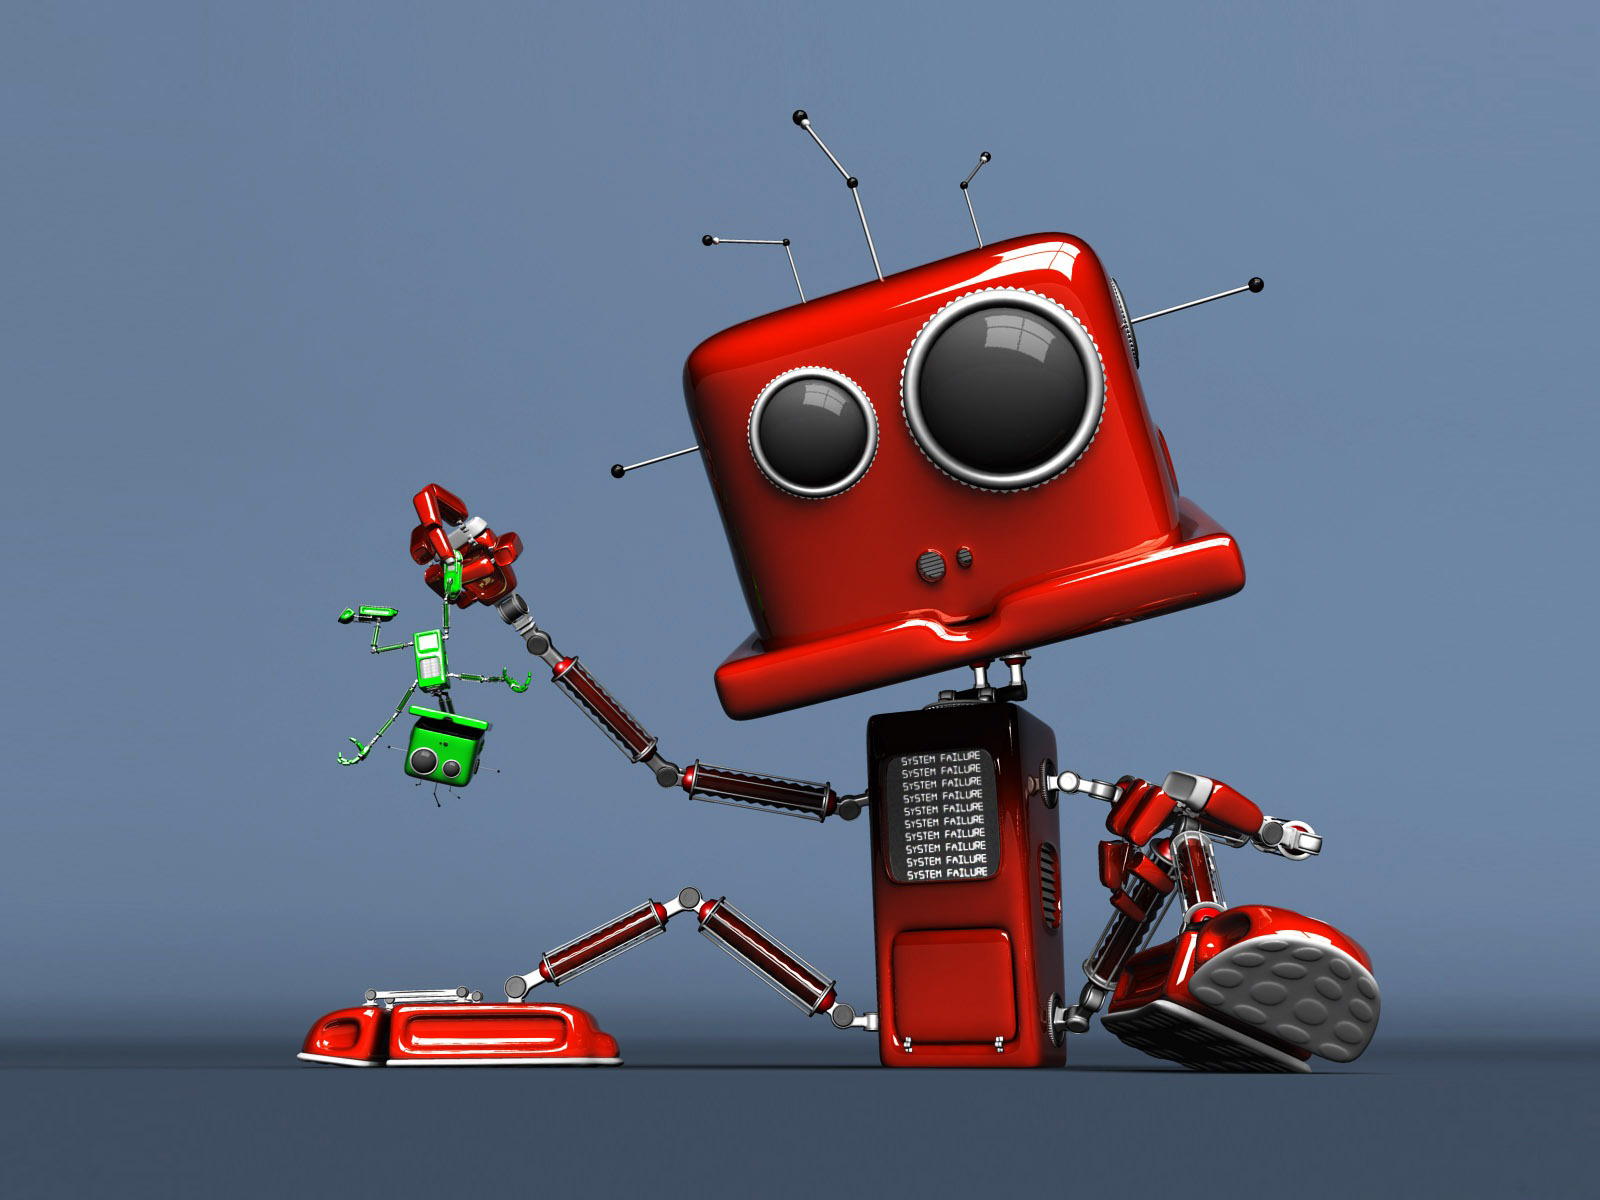 Cute Red Robot computer desktop wallpapers pictures images 1600x1200